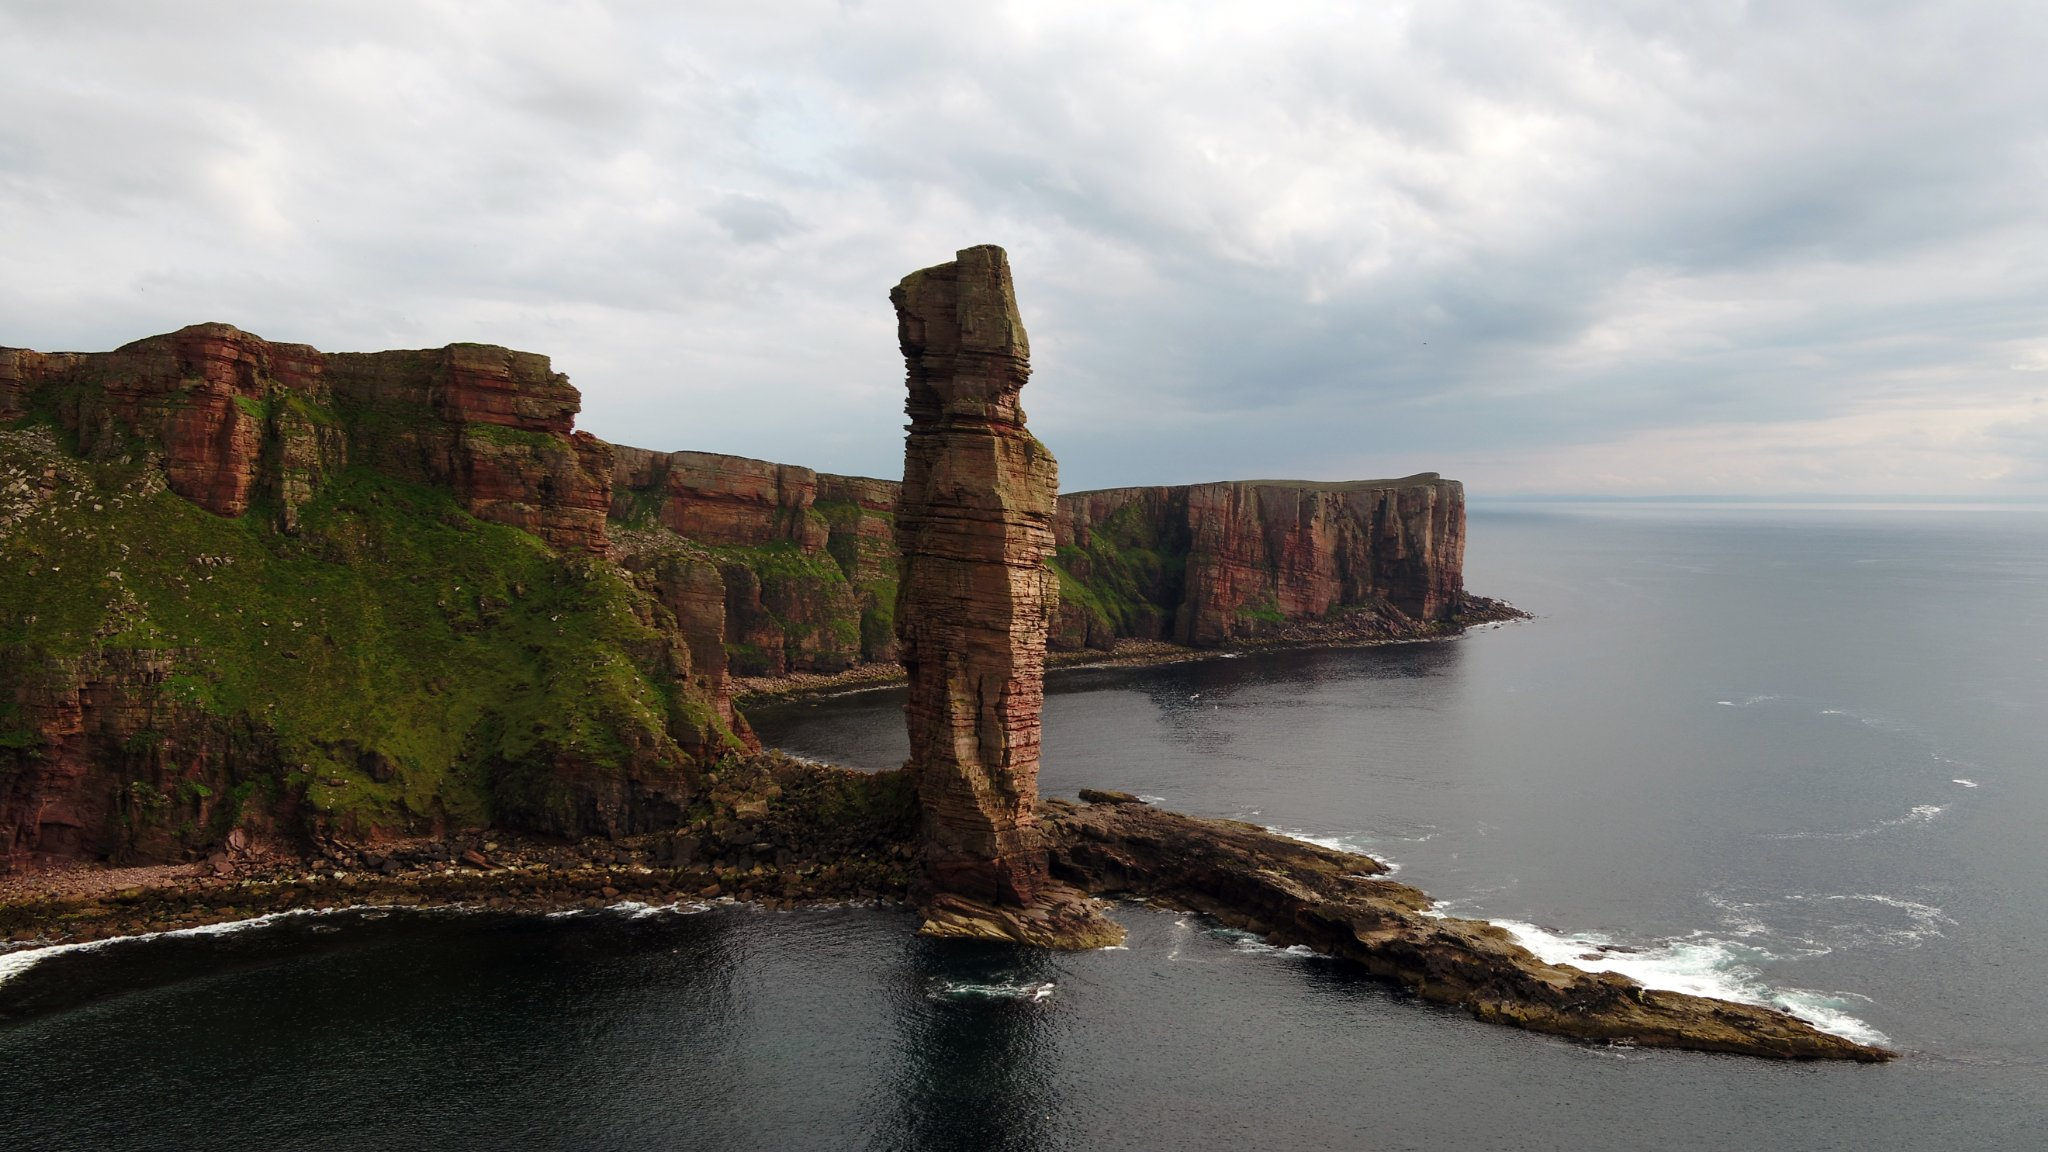 The Old Man of Hoy, Orkney - image by Nick McCaffrey